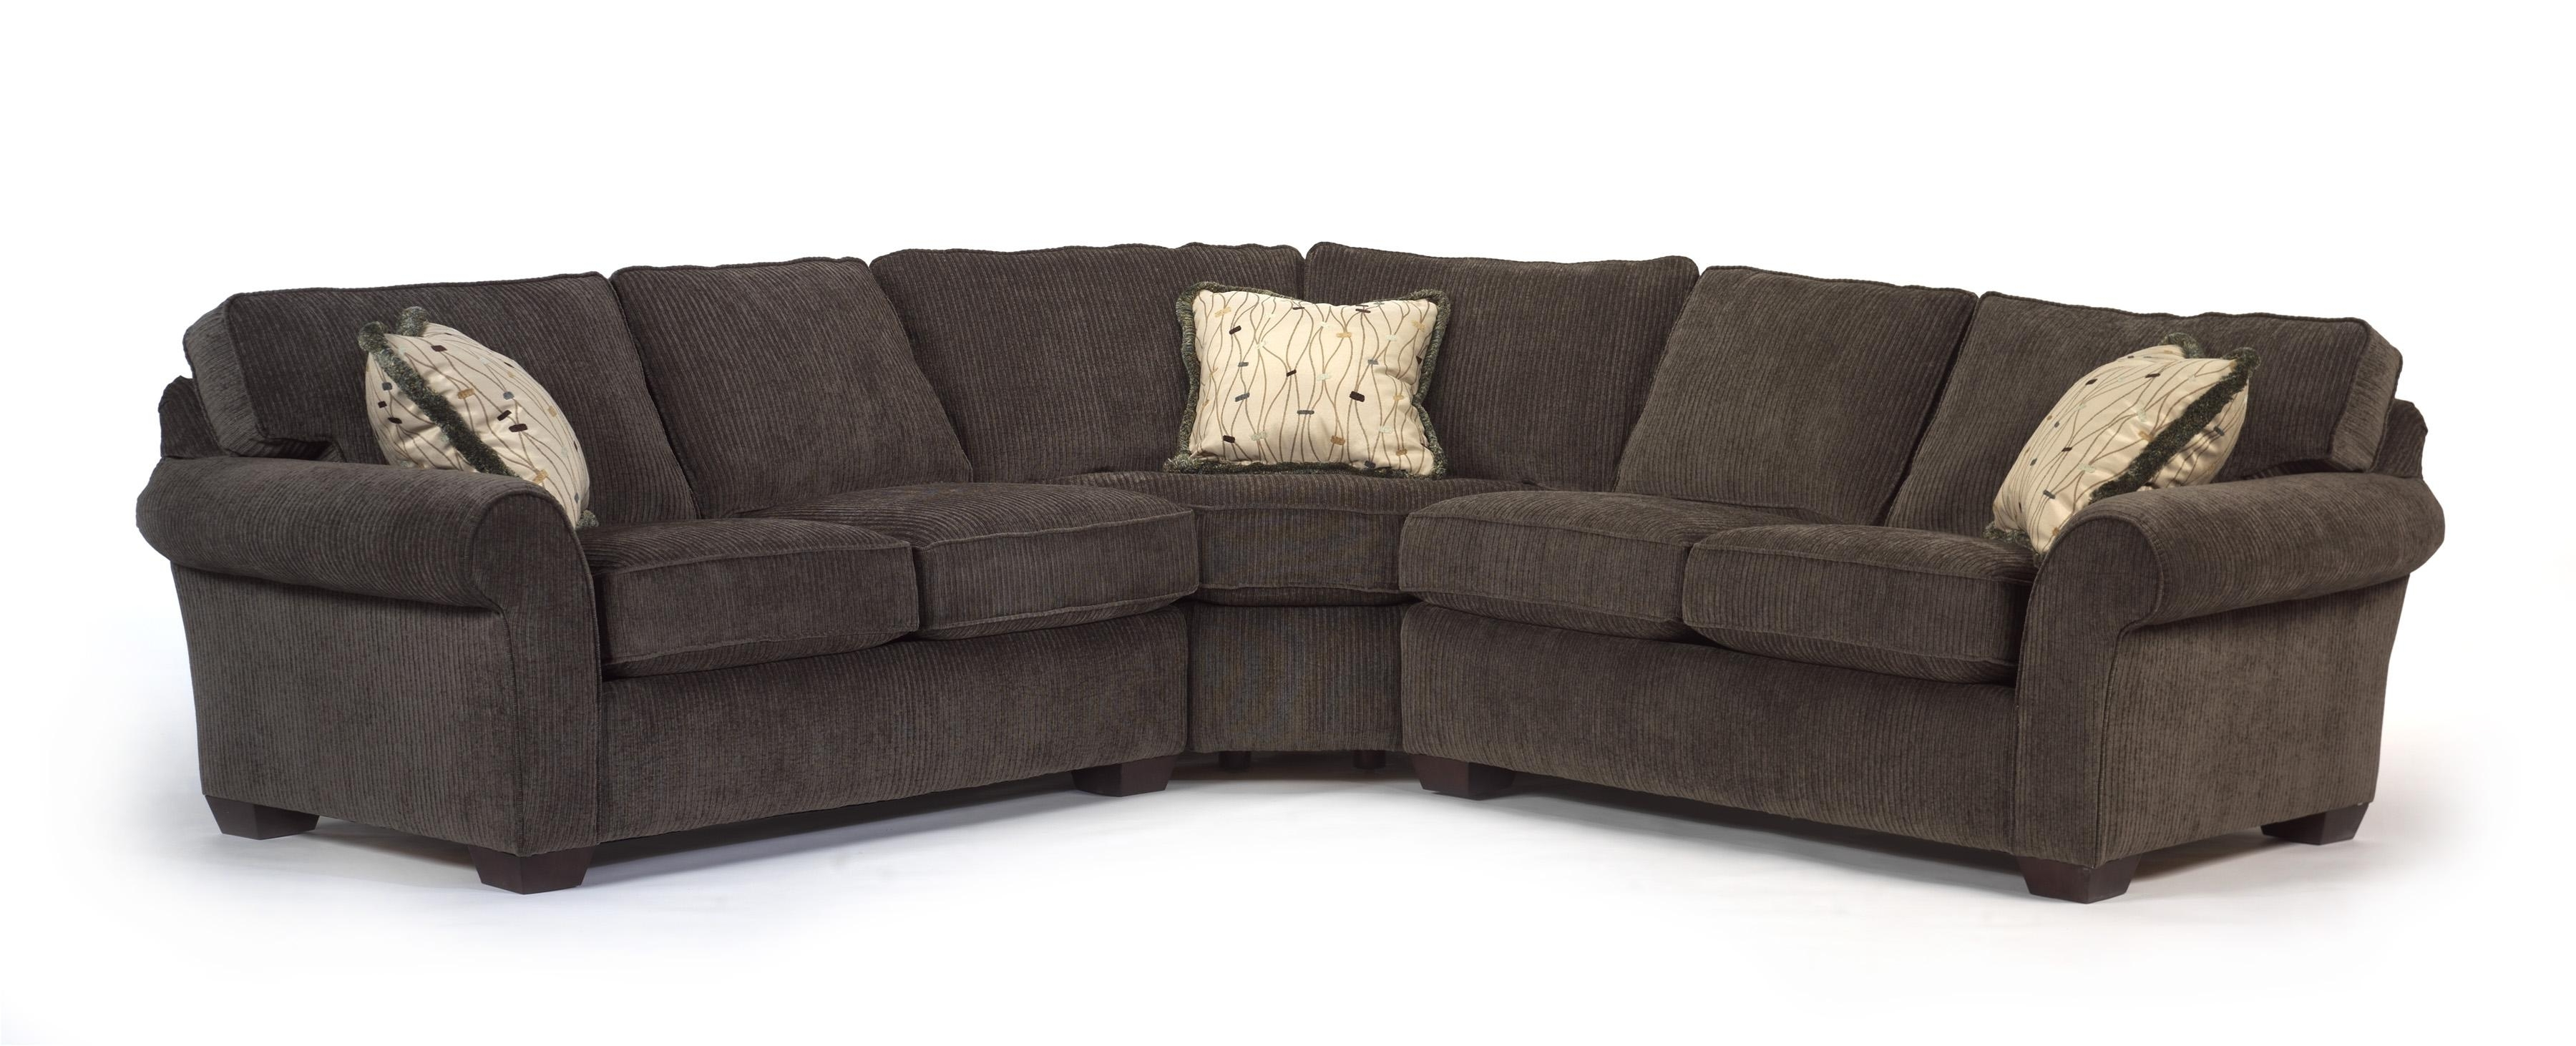 Flexsteel Vail Corner Sectional Sofa – Ahfa – Sofa Sectional Within Well Liked Kansas City Sectional Sofas (View 5 of 20)